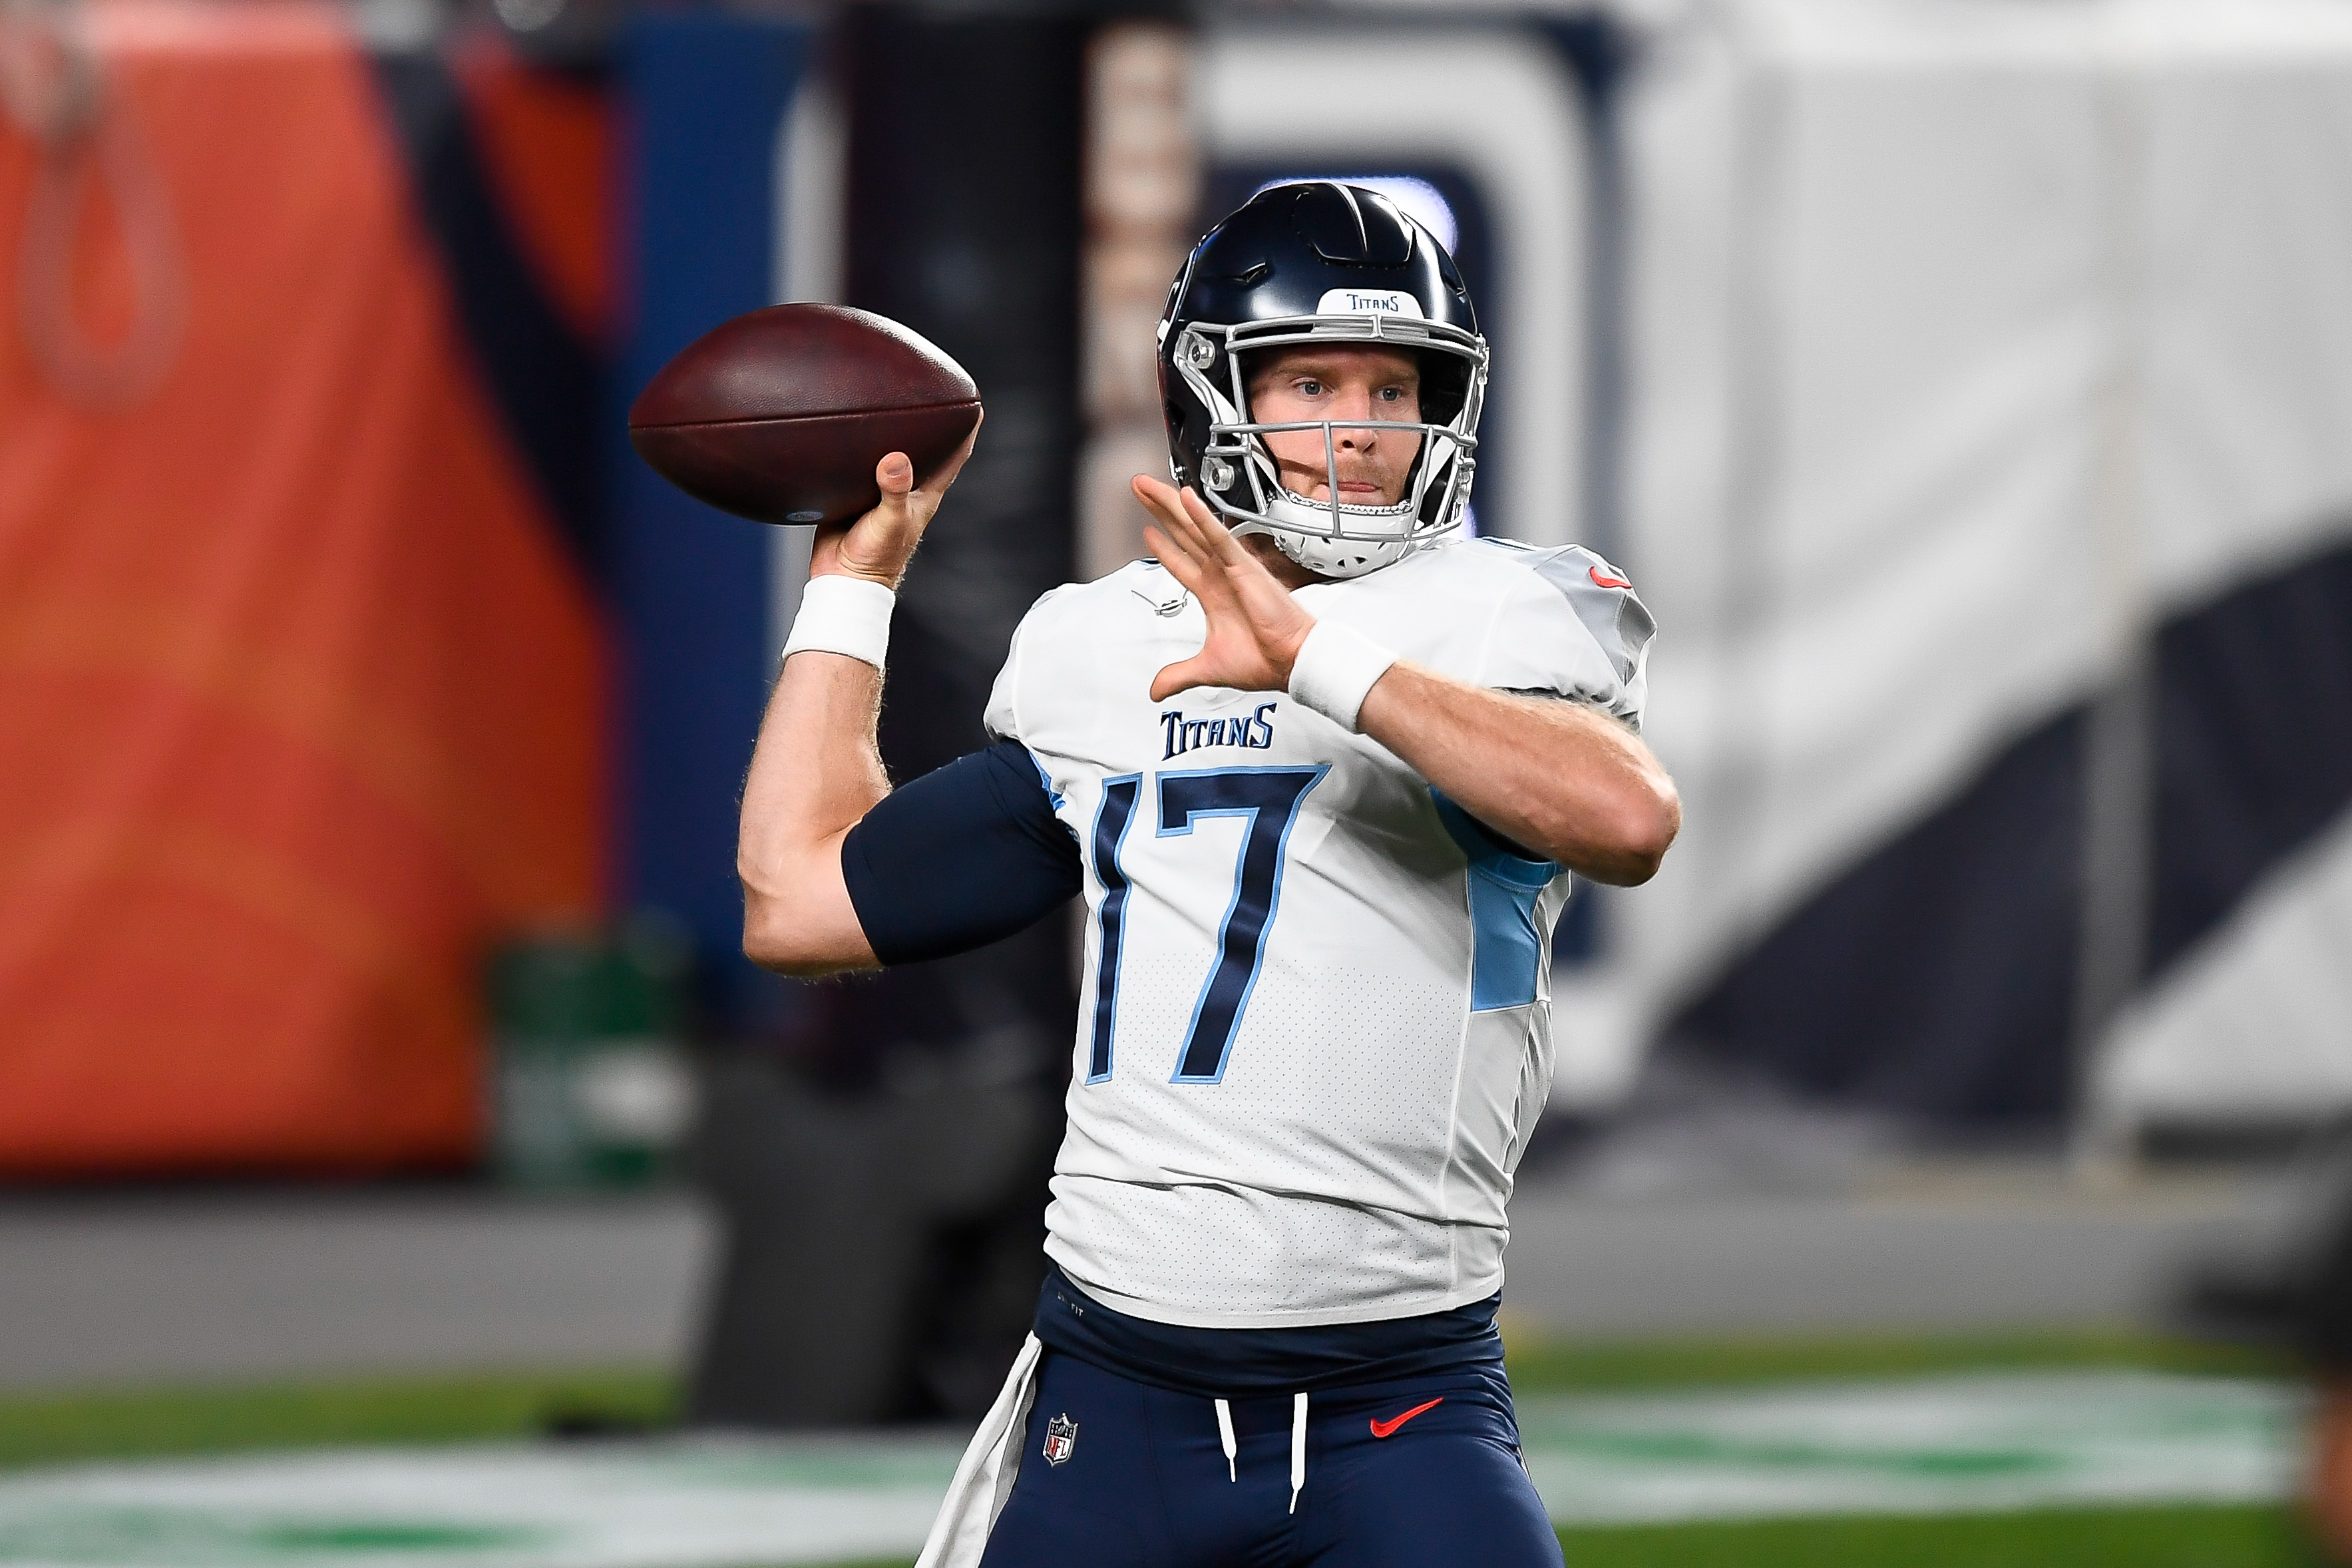 Ryan Tannehill has the Tennessee Titans at 4-0.